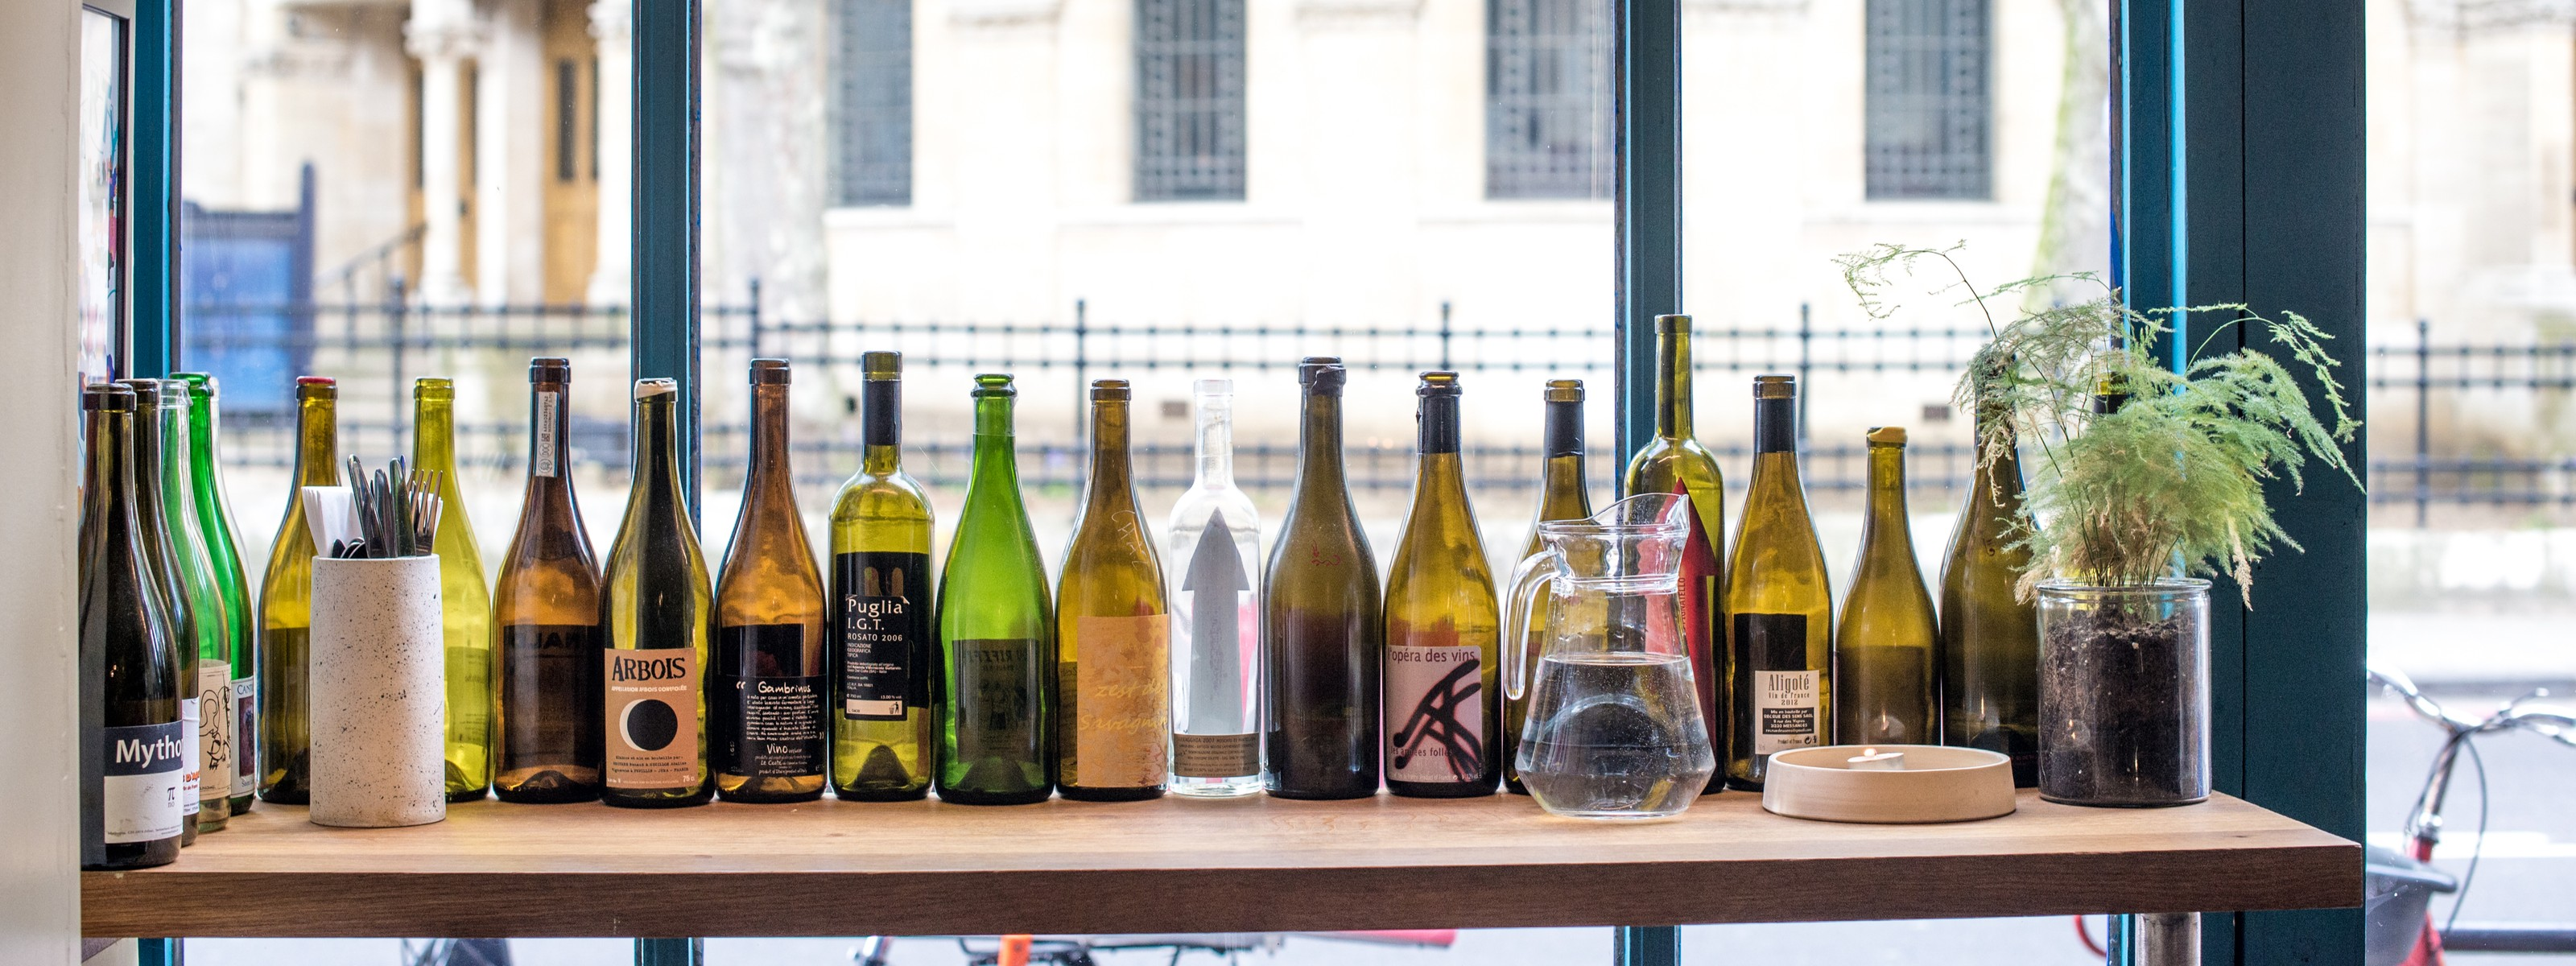 The London Alcohol Delivery Guide - London - The Infatuation